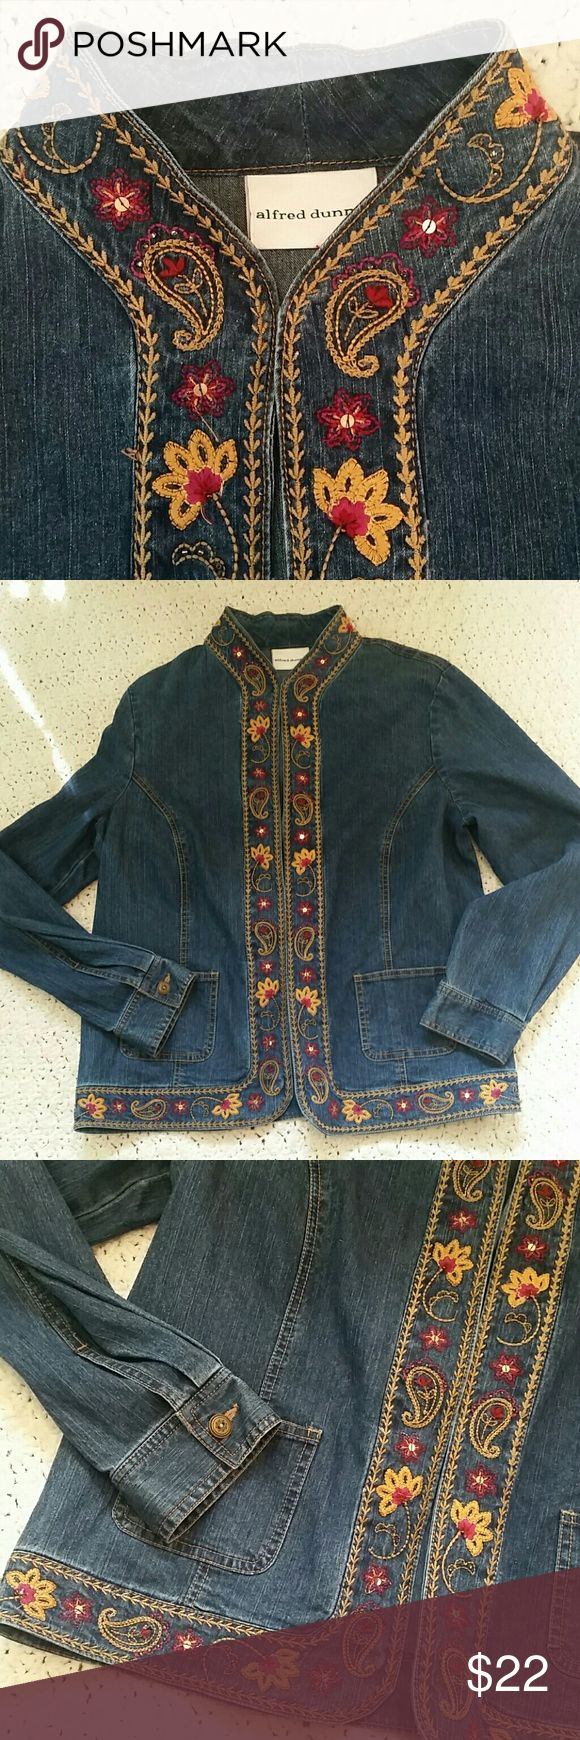 """Alfred Dunner Ladies Denim Jacket This is a pretty long sleeve, darker denim open front jacket with floral embroidery and sequin trim. Trim is burgundy and gold. Jacket has 2 front pockets. Size 10, EUC,  length is 25 1/4"""", armpit to armpit is 21 1/2"""", sleeve length is 24 1/2"""". Smoke Free Home Alfred Dunner Jackets & Coats Jean Jackets"""